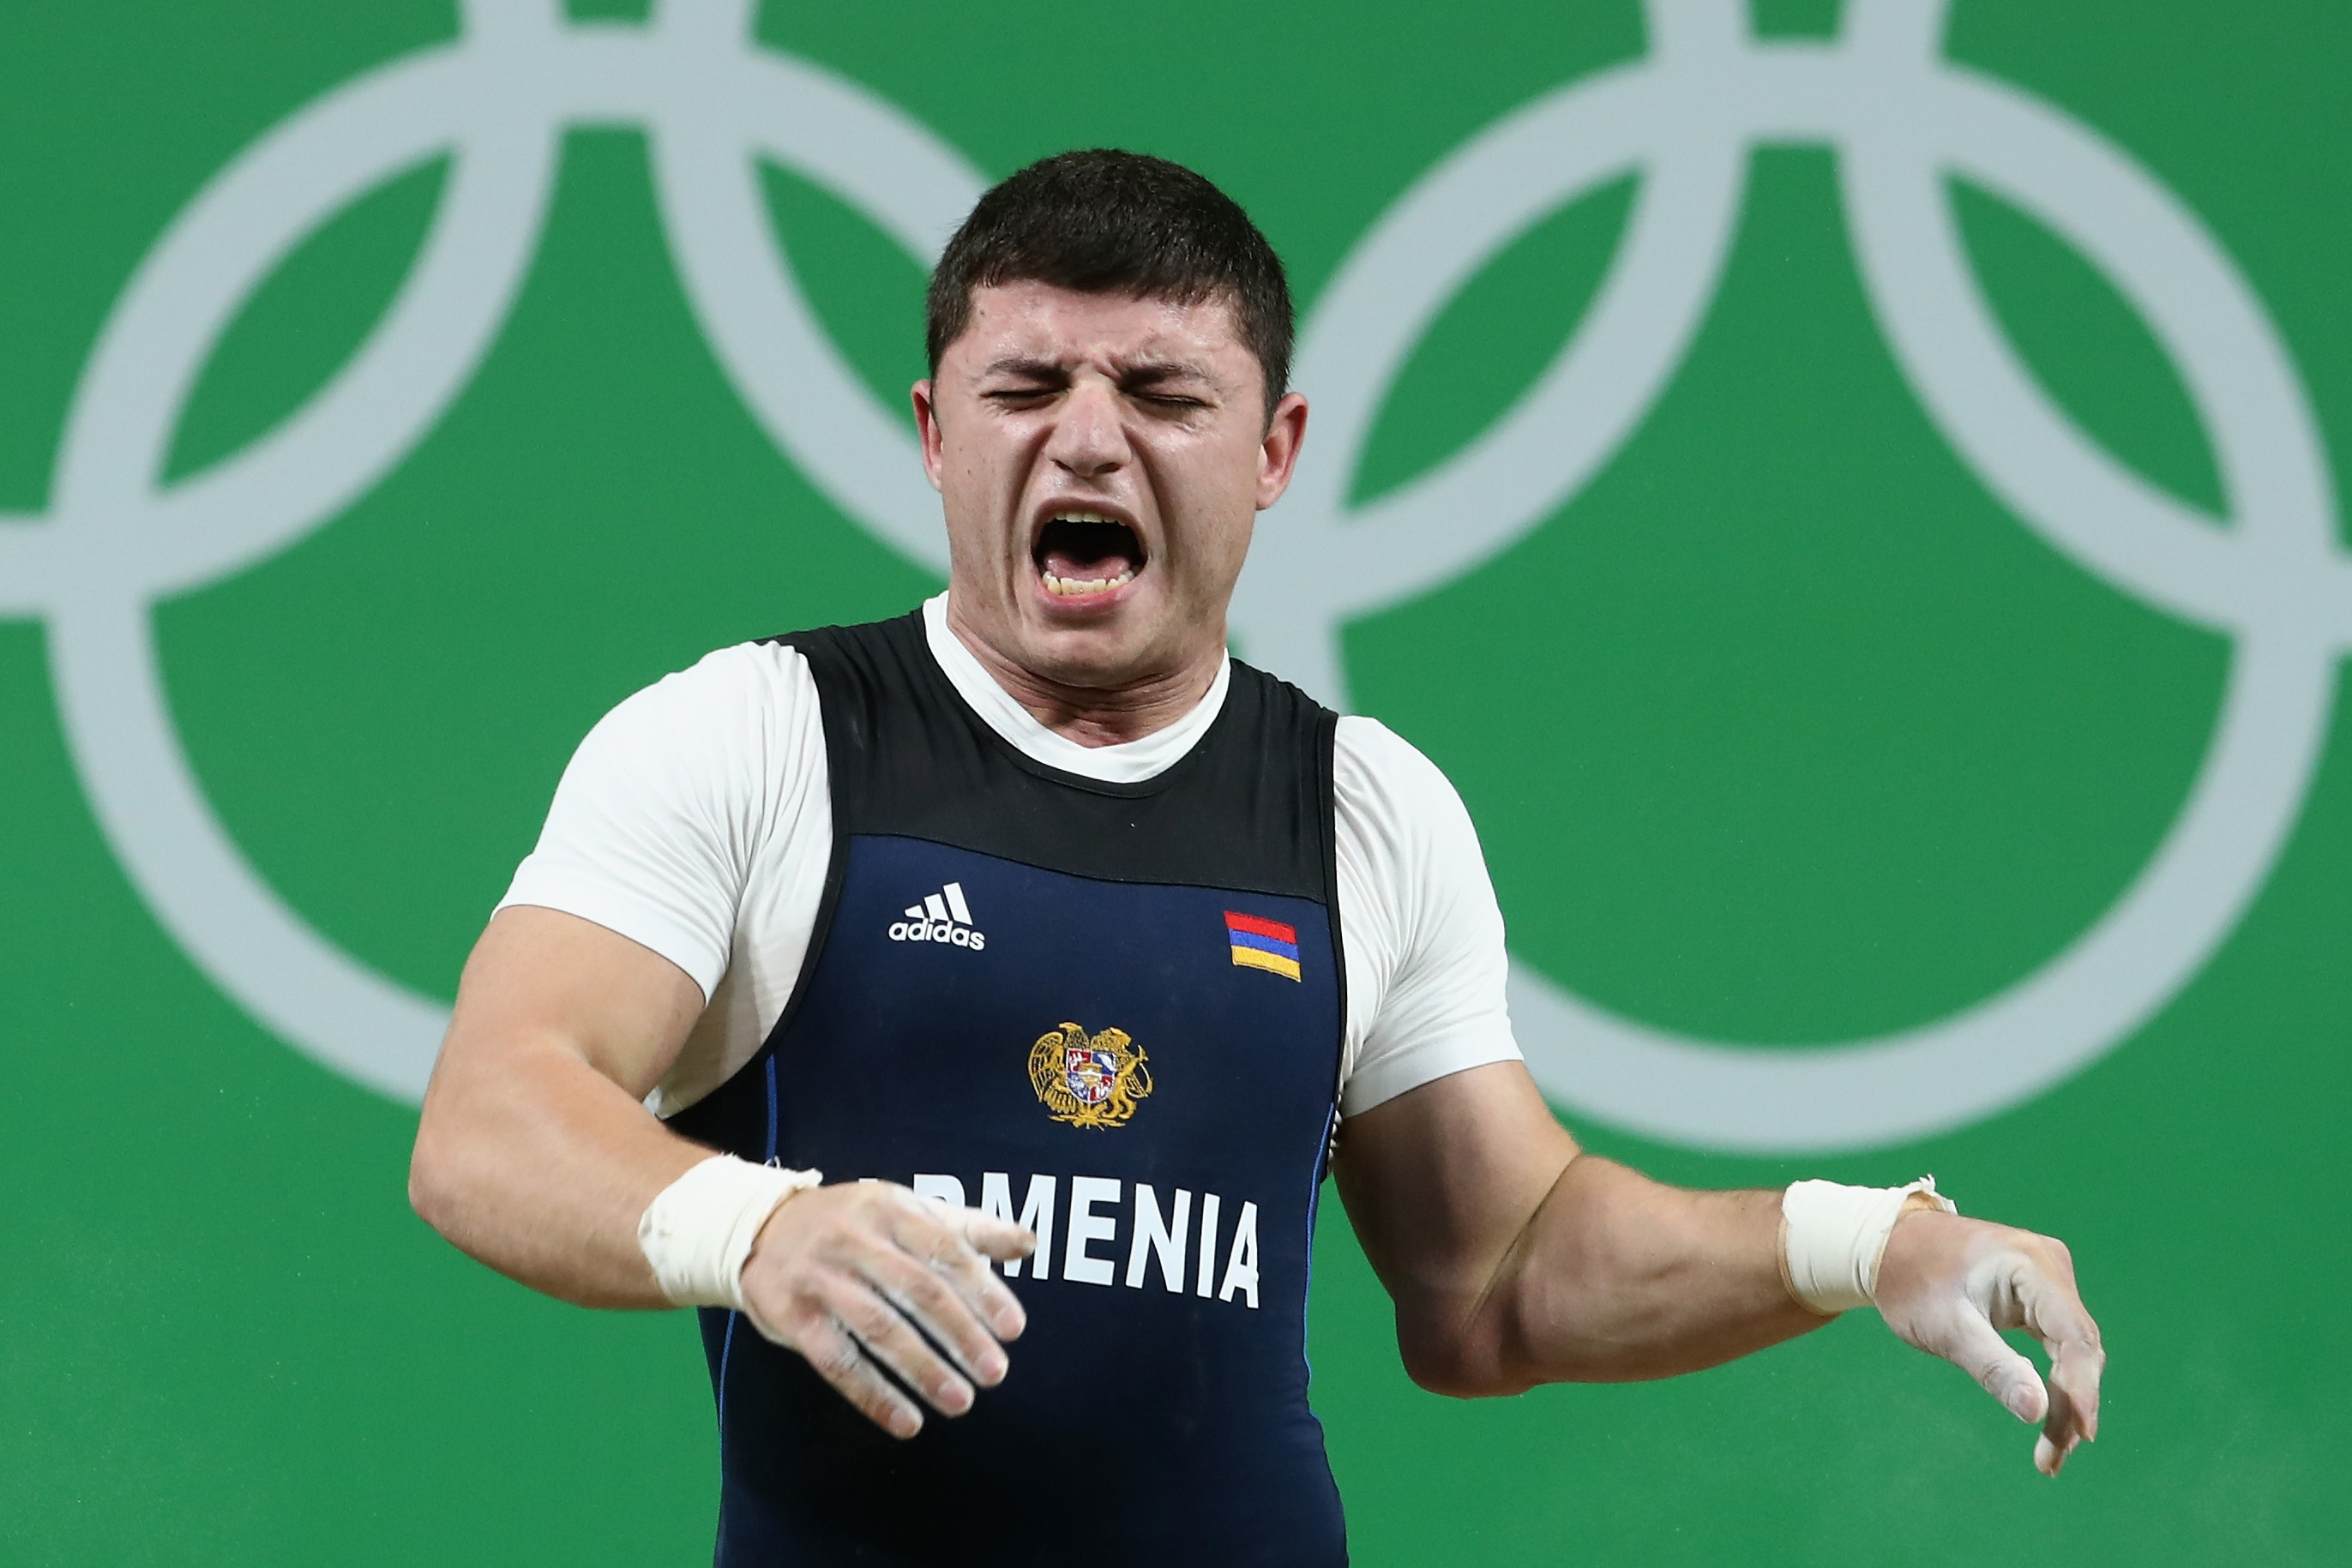 RIO DE JANEIRO, BRAZIL - AUGUST 10: Andranik Karapetyan of Armenia reacts to an injury during the Men's 77kg Group A weightlifting contest on Day 5 of the Rio 2016 Olympic Games at Riocentro - Pavilion 2 on August 10, 2016 in Rio de Janeiro, Brazil. (Photo by Julian Finney/Getty Images)